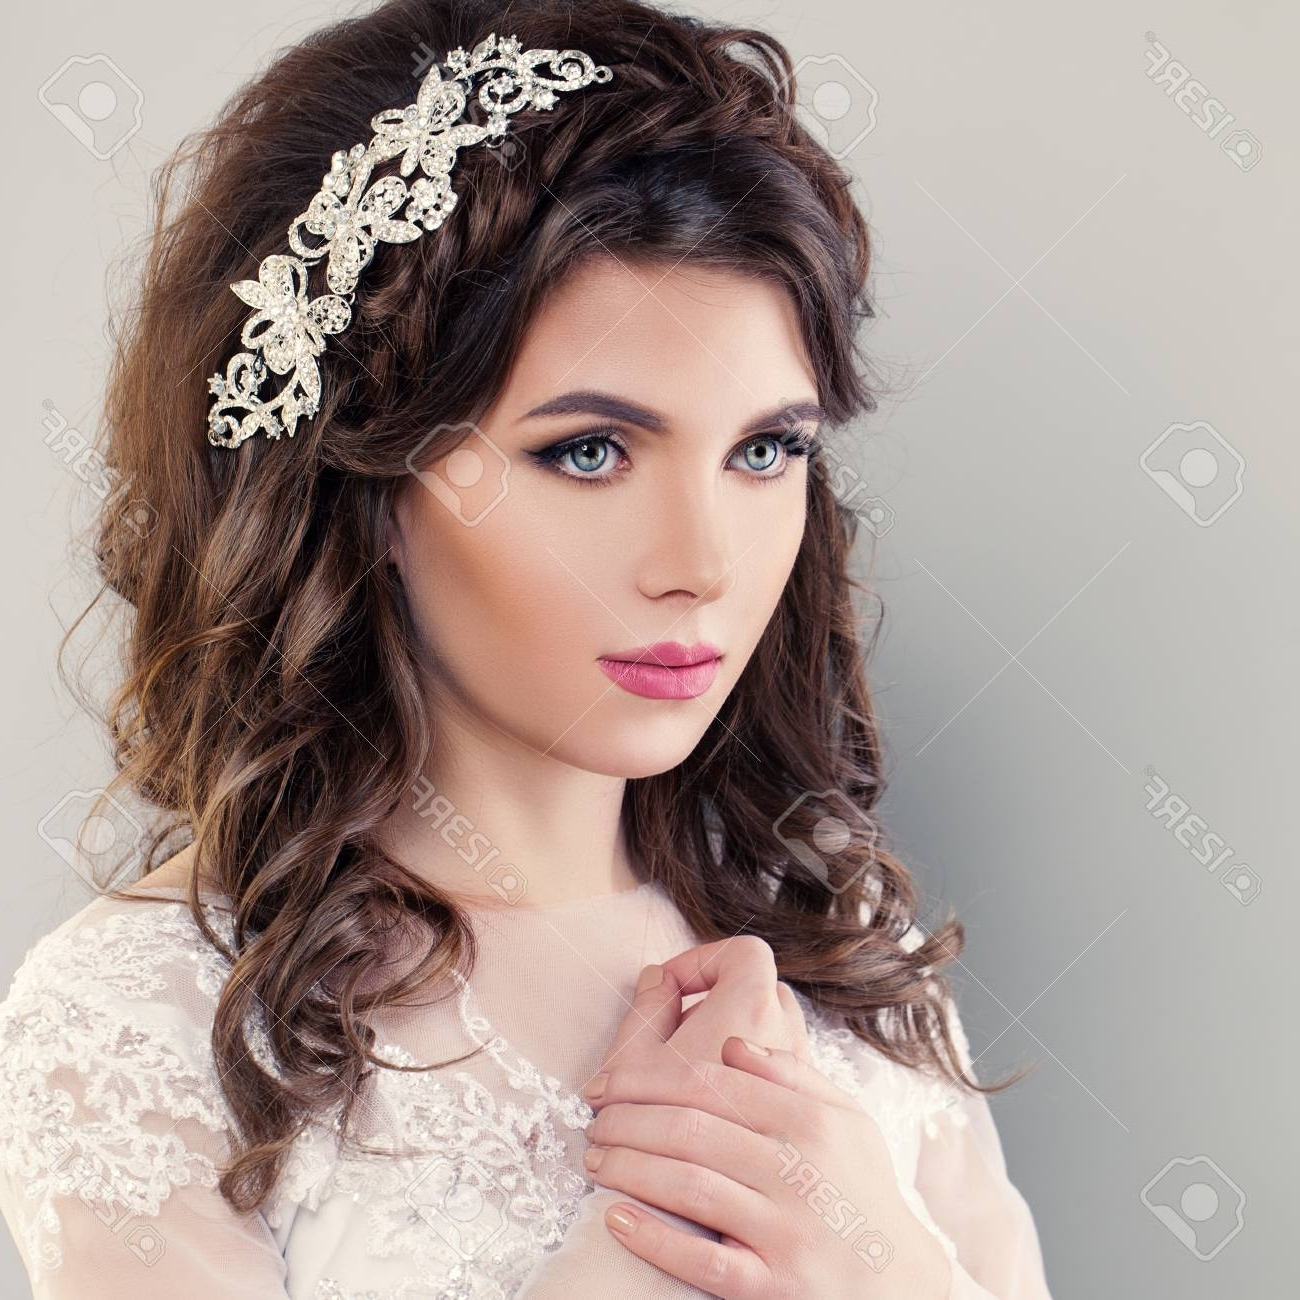 Current Wedding Hairstyles For Young Brides For Beauty Fashion Portrait Of Young Bride With Wedding Hairstyle (View 7 of 15)